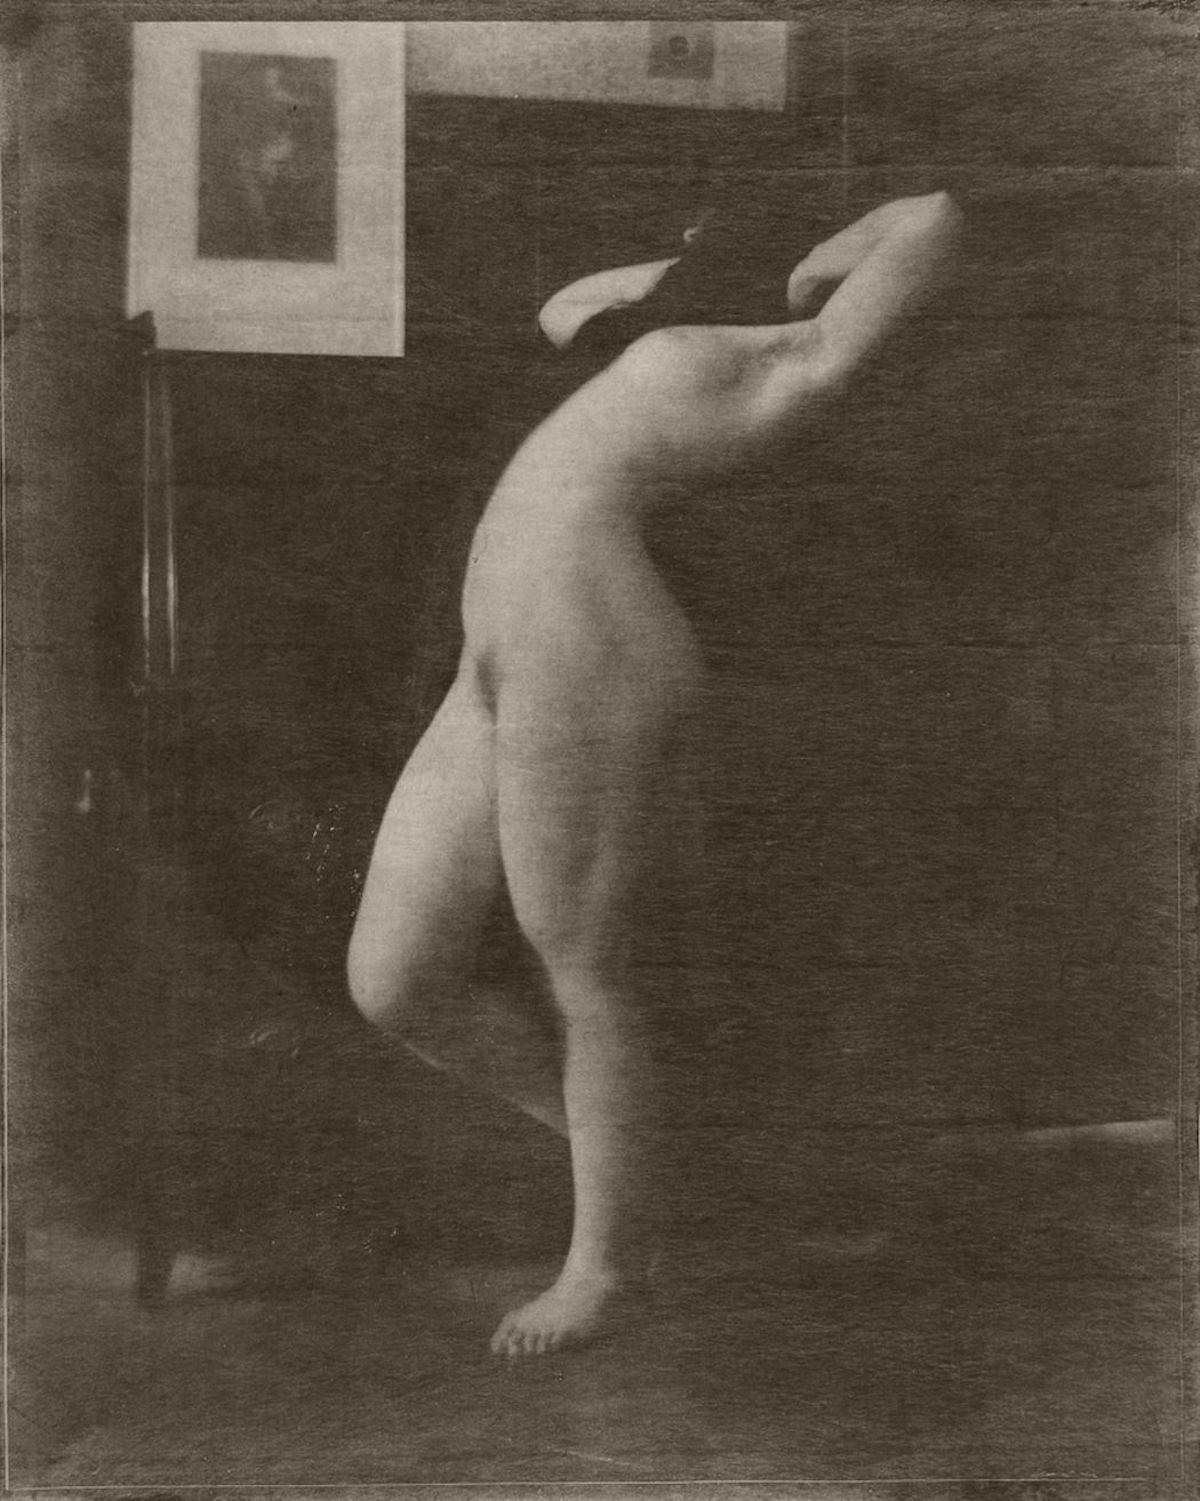 Heinrich Kuhn, photography, 1890s